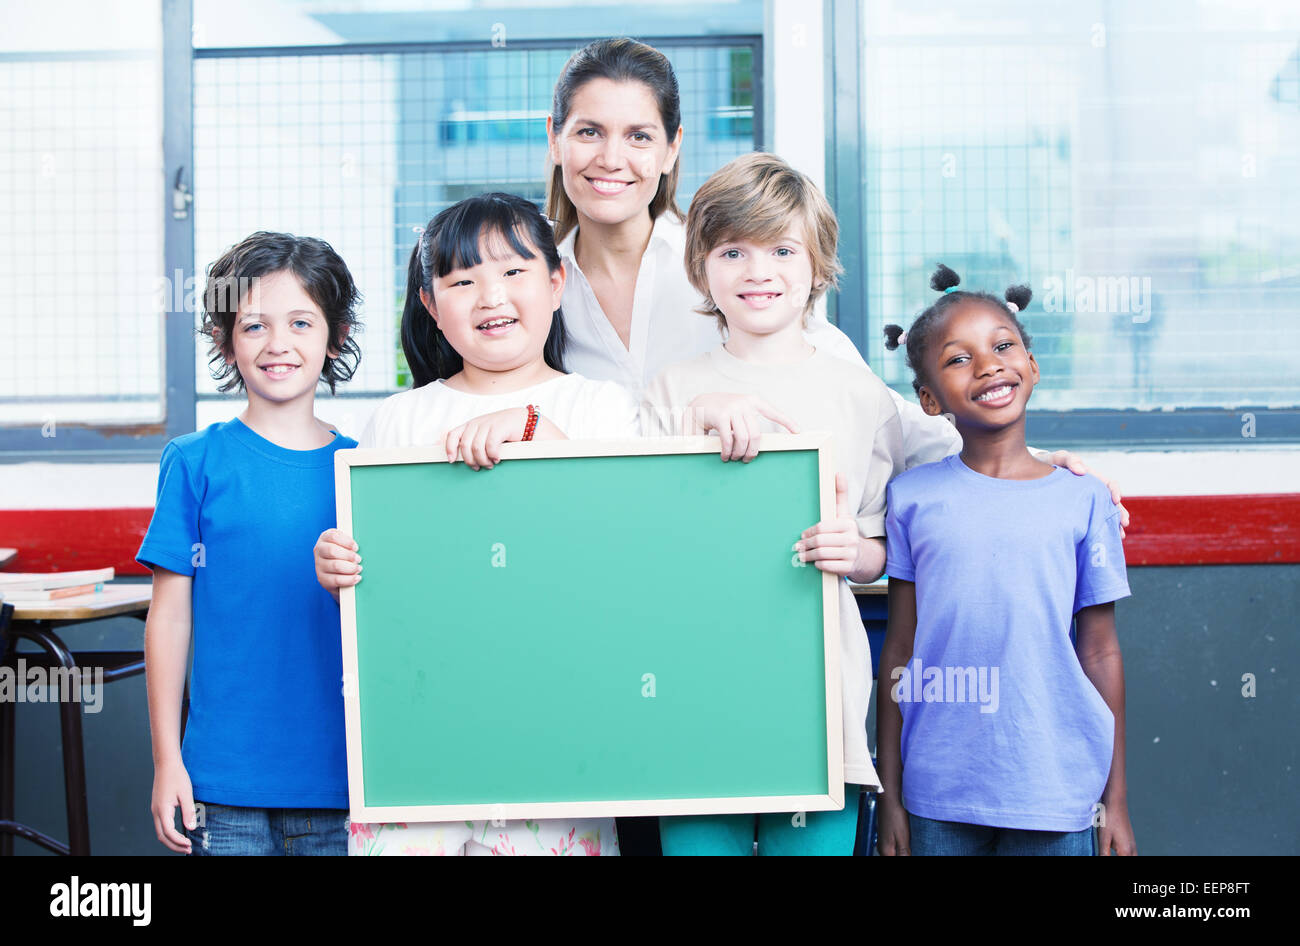 Happy students and teacher  holding empty chalkboard. Primary school interracial concept. Stock Photo